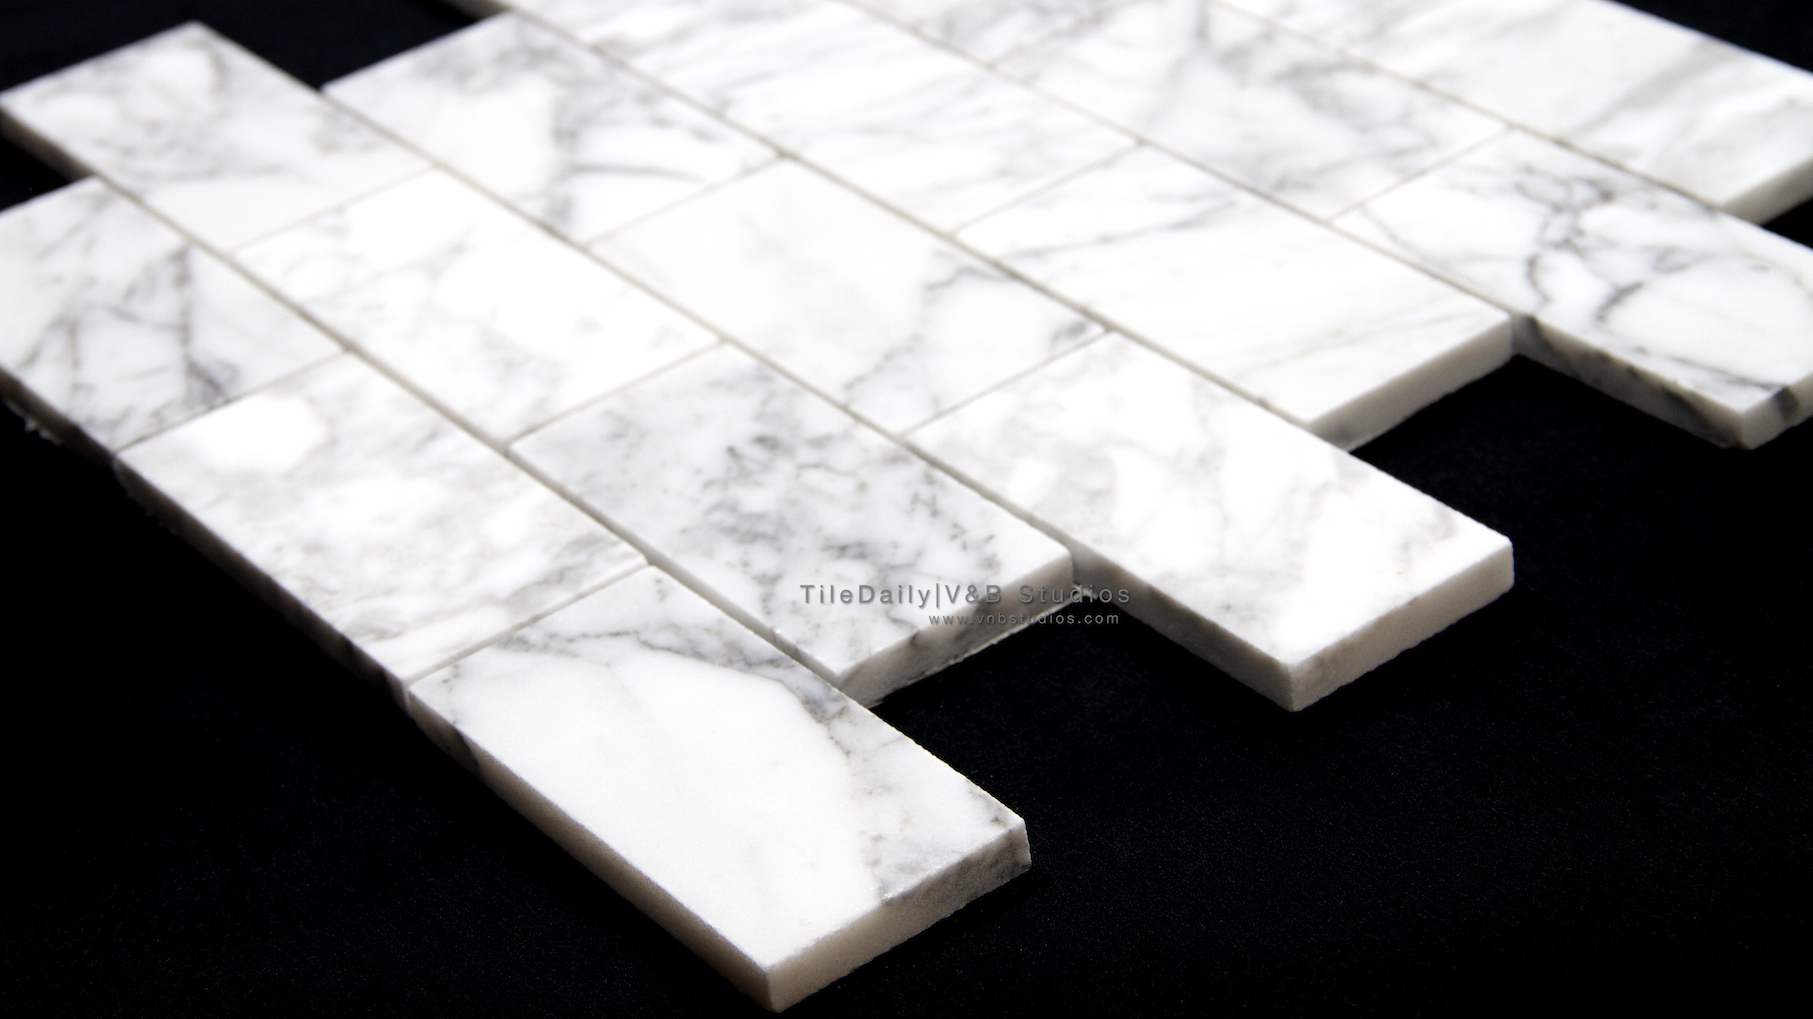 Subway Tiledaily - Carrara porcelain tile 3x6